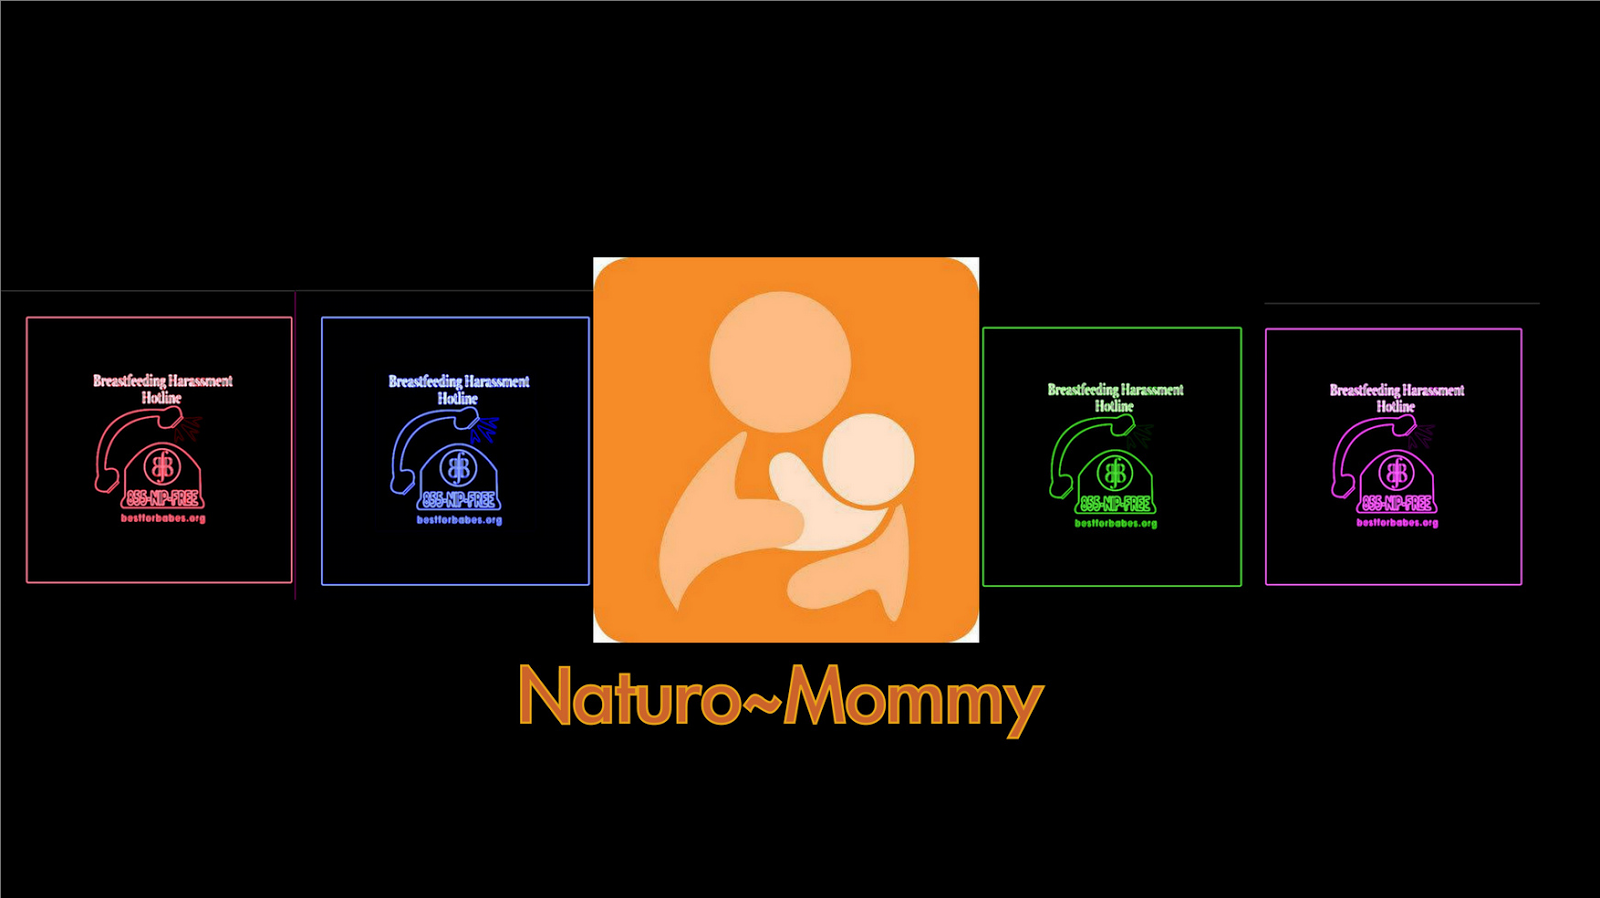 Naturo-Mommy